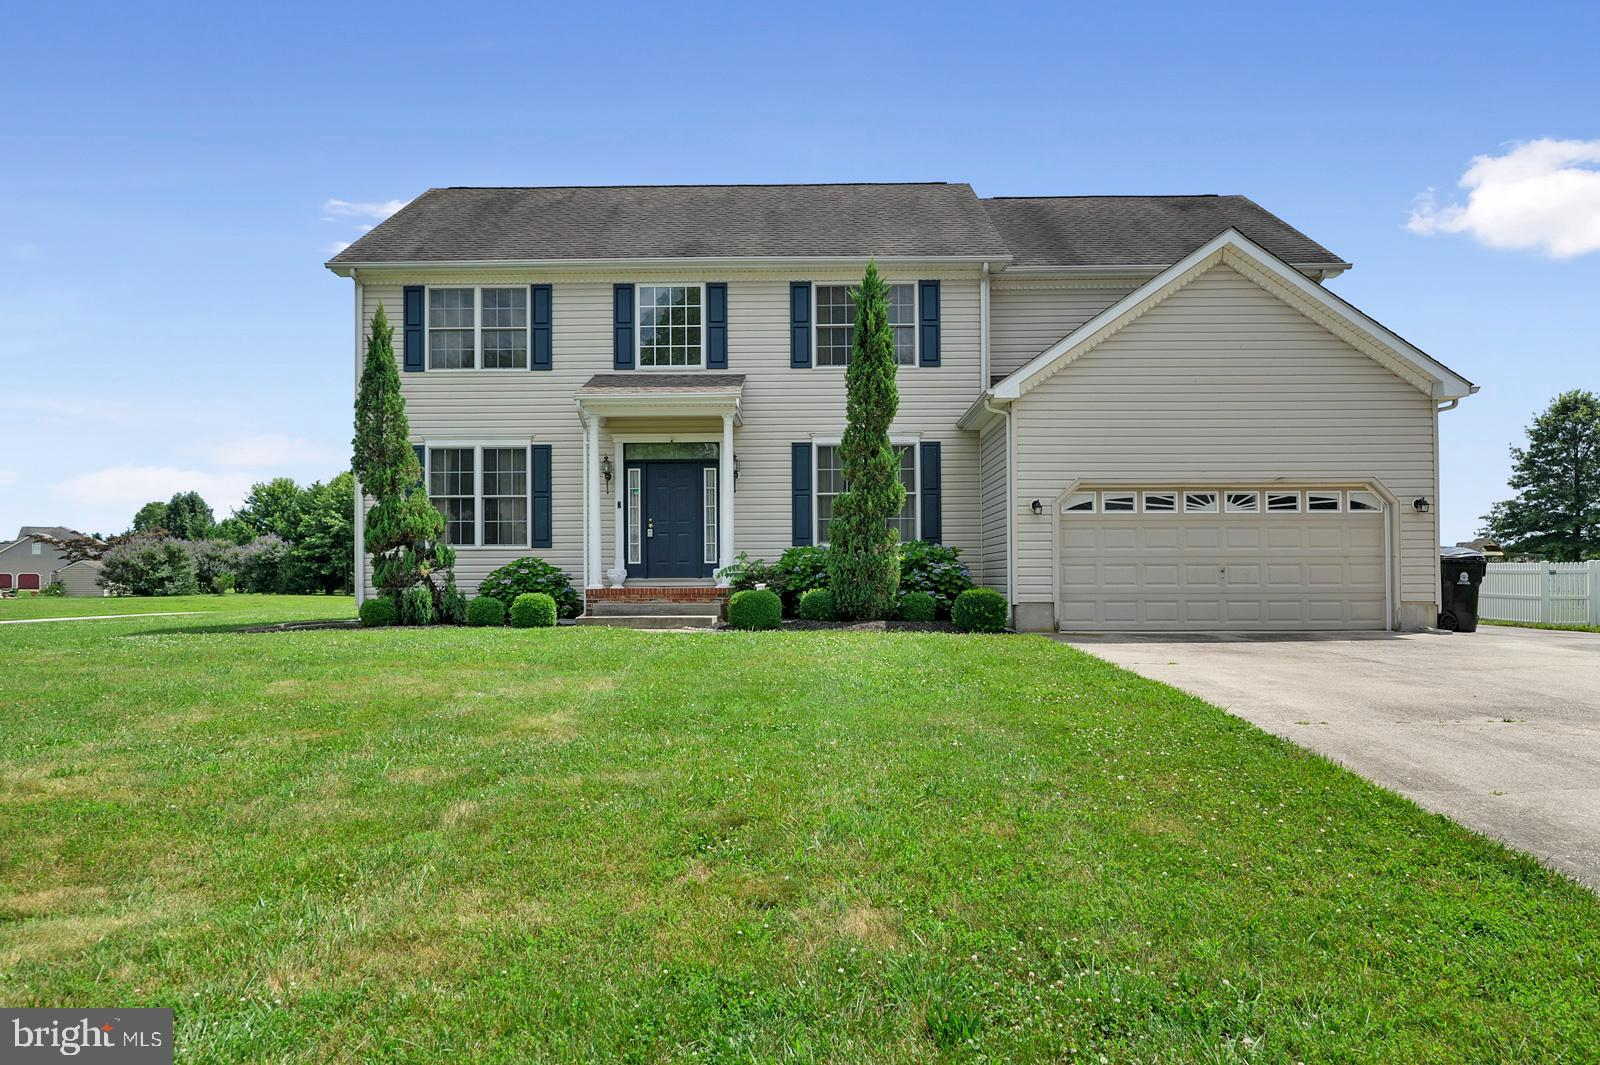 Do not miss this stately two story colonial situated on a large corner lot in the CR School District.  As you enter the hardwood foyer you find yourself between the formal dining room and roomy home office with French doors and oversized windows.  Proceeding to the rear of the home you find the great room featuring a wall of windows providing an abundance of natural light, a gas fireplace, and an ideal spot for entertaining being open to the kitchen and eat-in area.  The kitchen boasts a center island workspace, hardwood flooring, and numerous cabinets and pantry.  This home also feature dual front and rear staircases and a cat-walk connecting the upper bedrooms with Jack & Jill bathroom and a primary bedroom that will having you sleeping in...  The spacious primary bed includes room for additional furniture, a roomy walk-in closet, and huge bath with separate shower and soaking tub.  On the lower level you will find a full unfinished basement with  bathroom rough-in and space for your imagination to go wild.  Easy to see!!